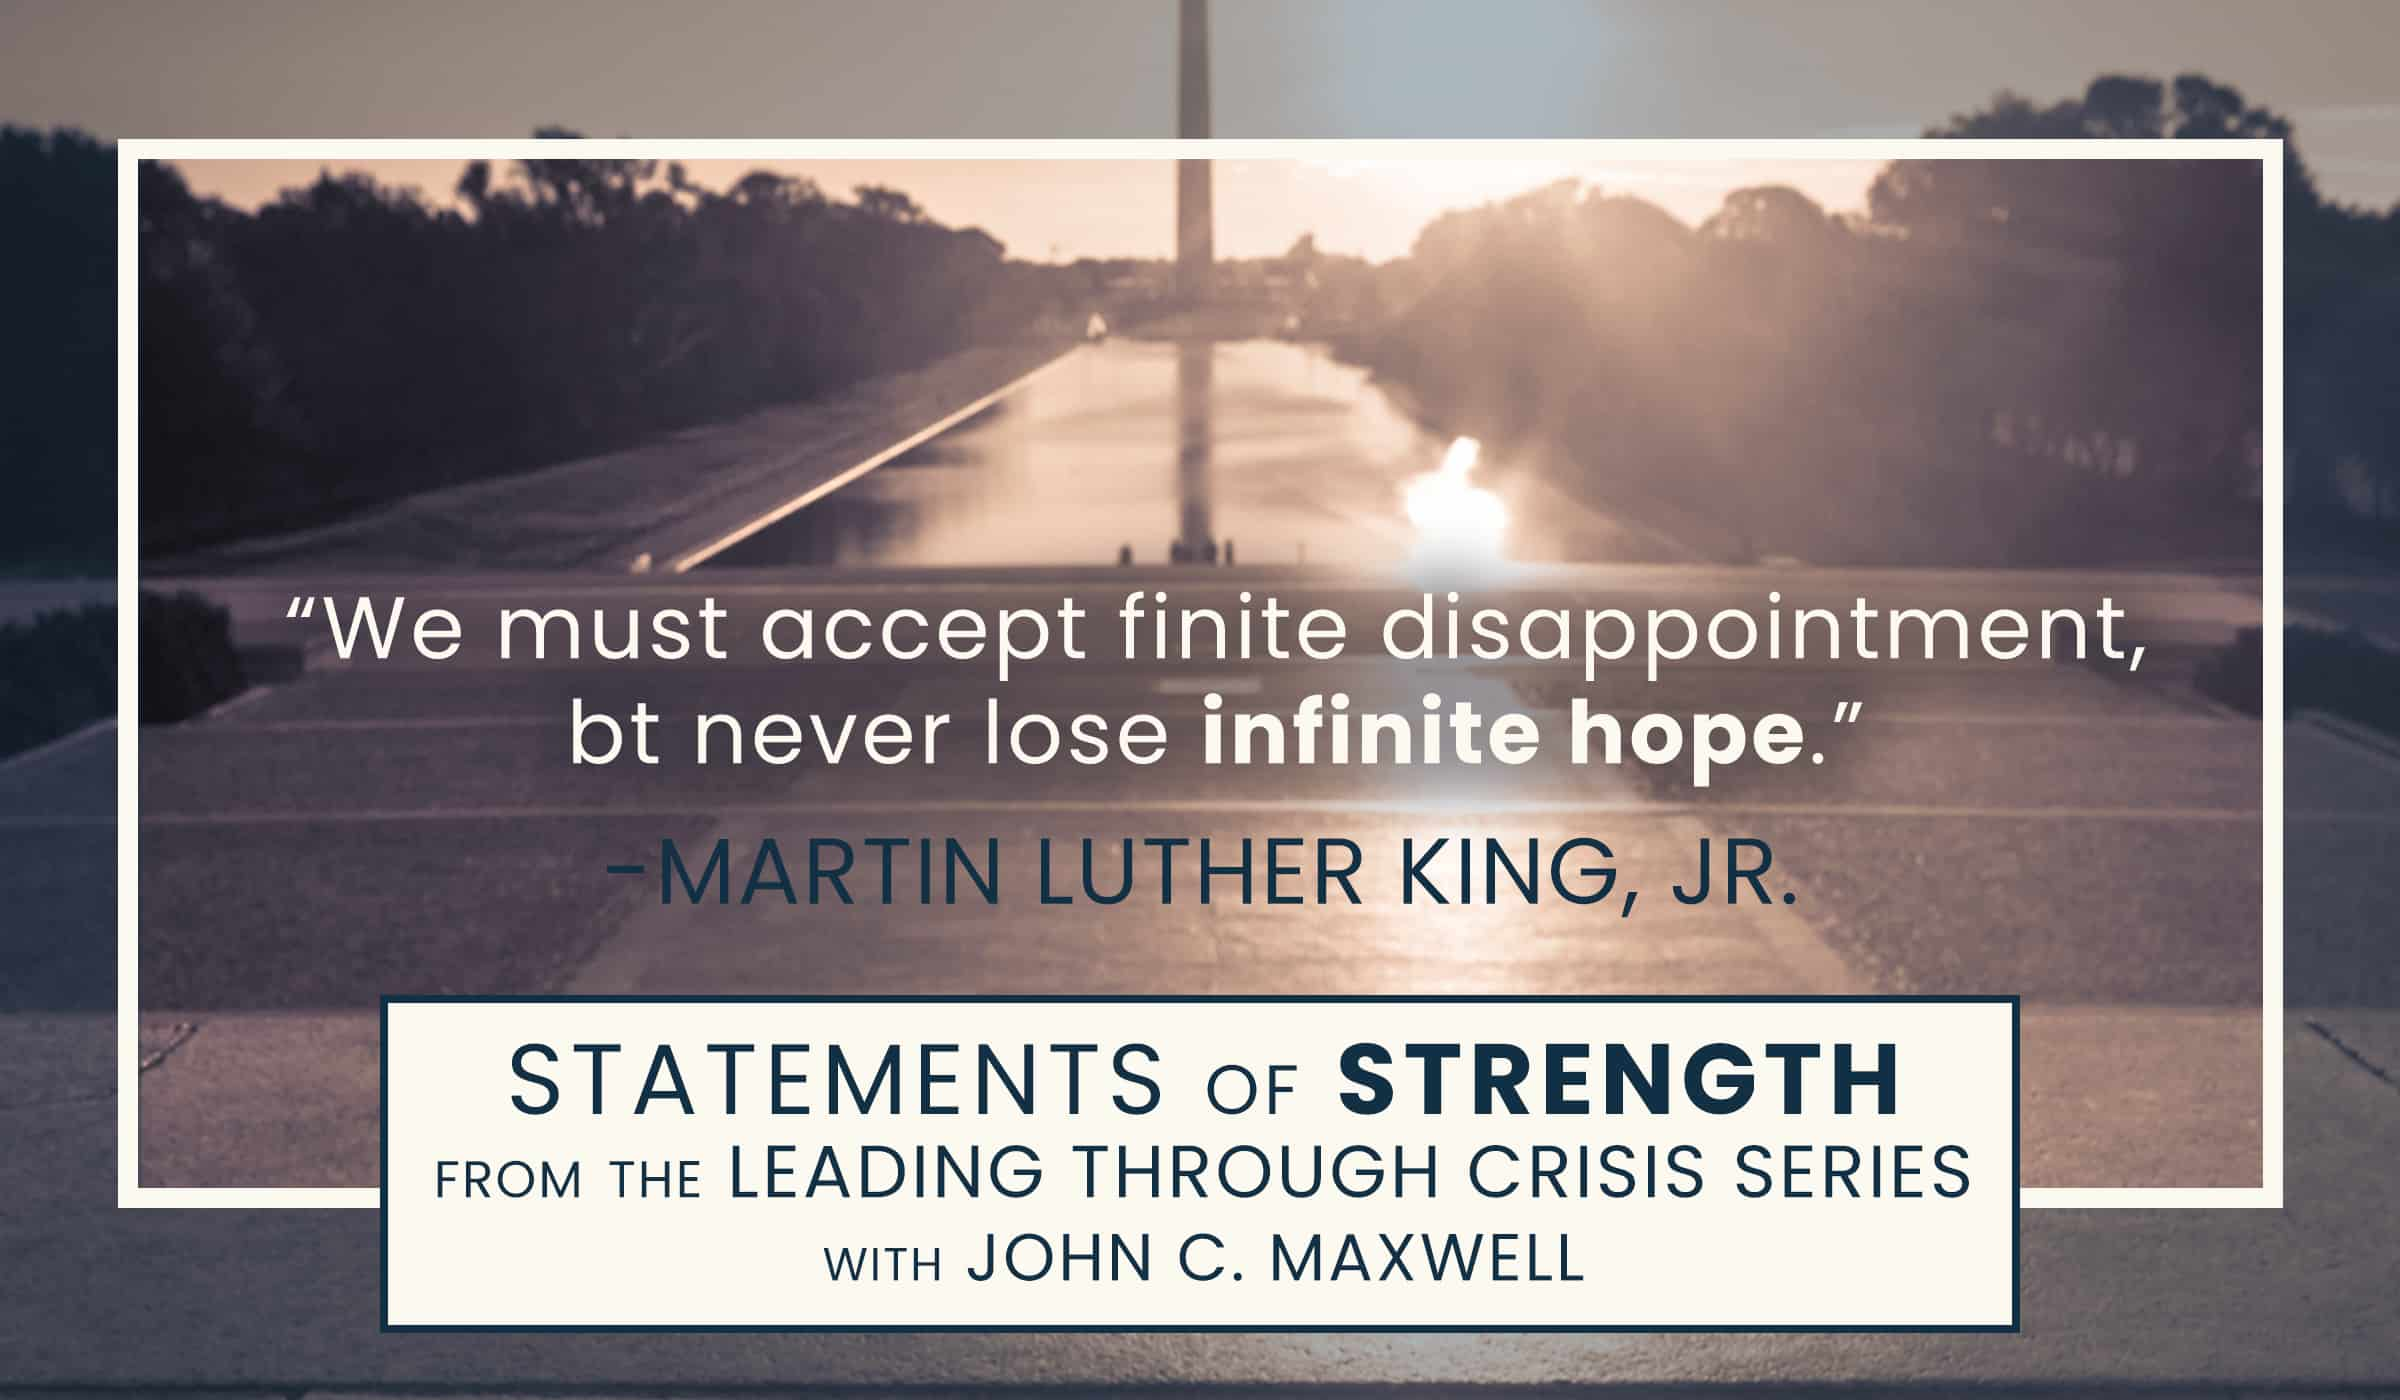 image of quote from dr martin luther king jr